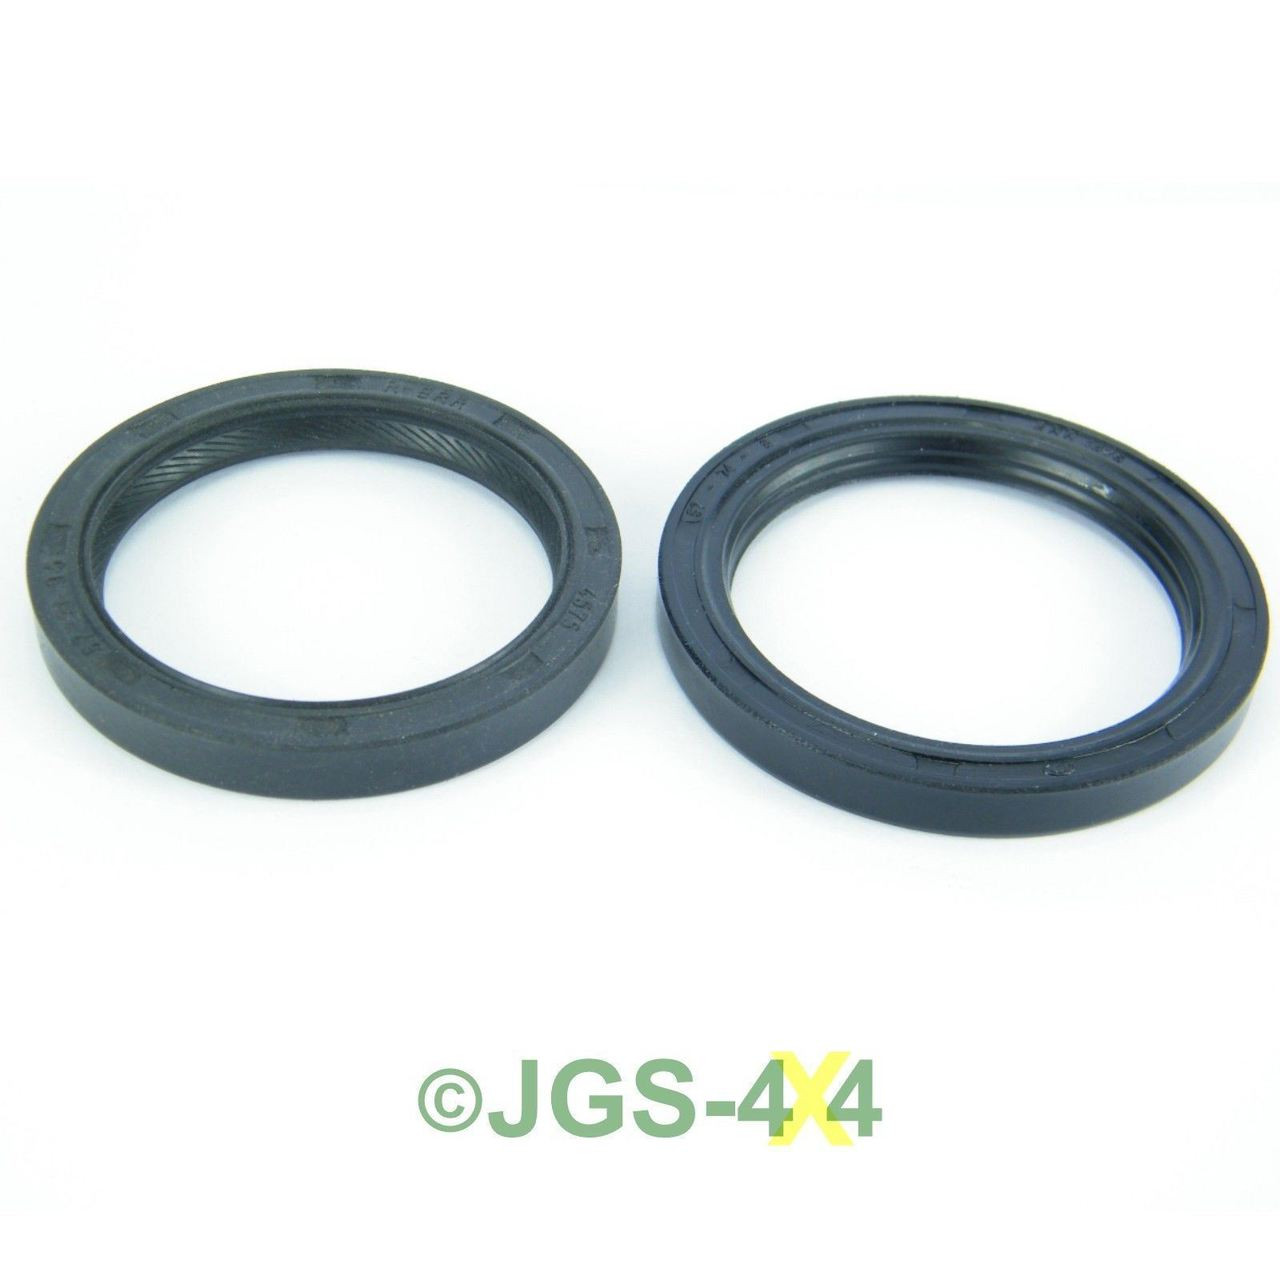 Land Rover Defender Discovery 1 300tdi Front Crankshaft Oil Seals The Timing Belt And Seal On A Err4575 76